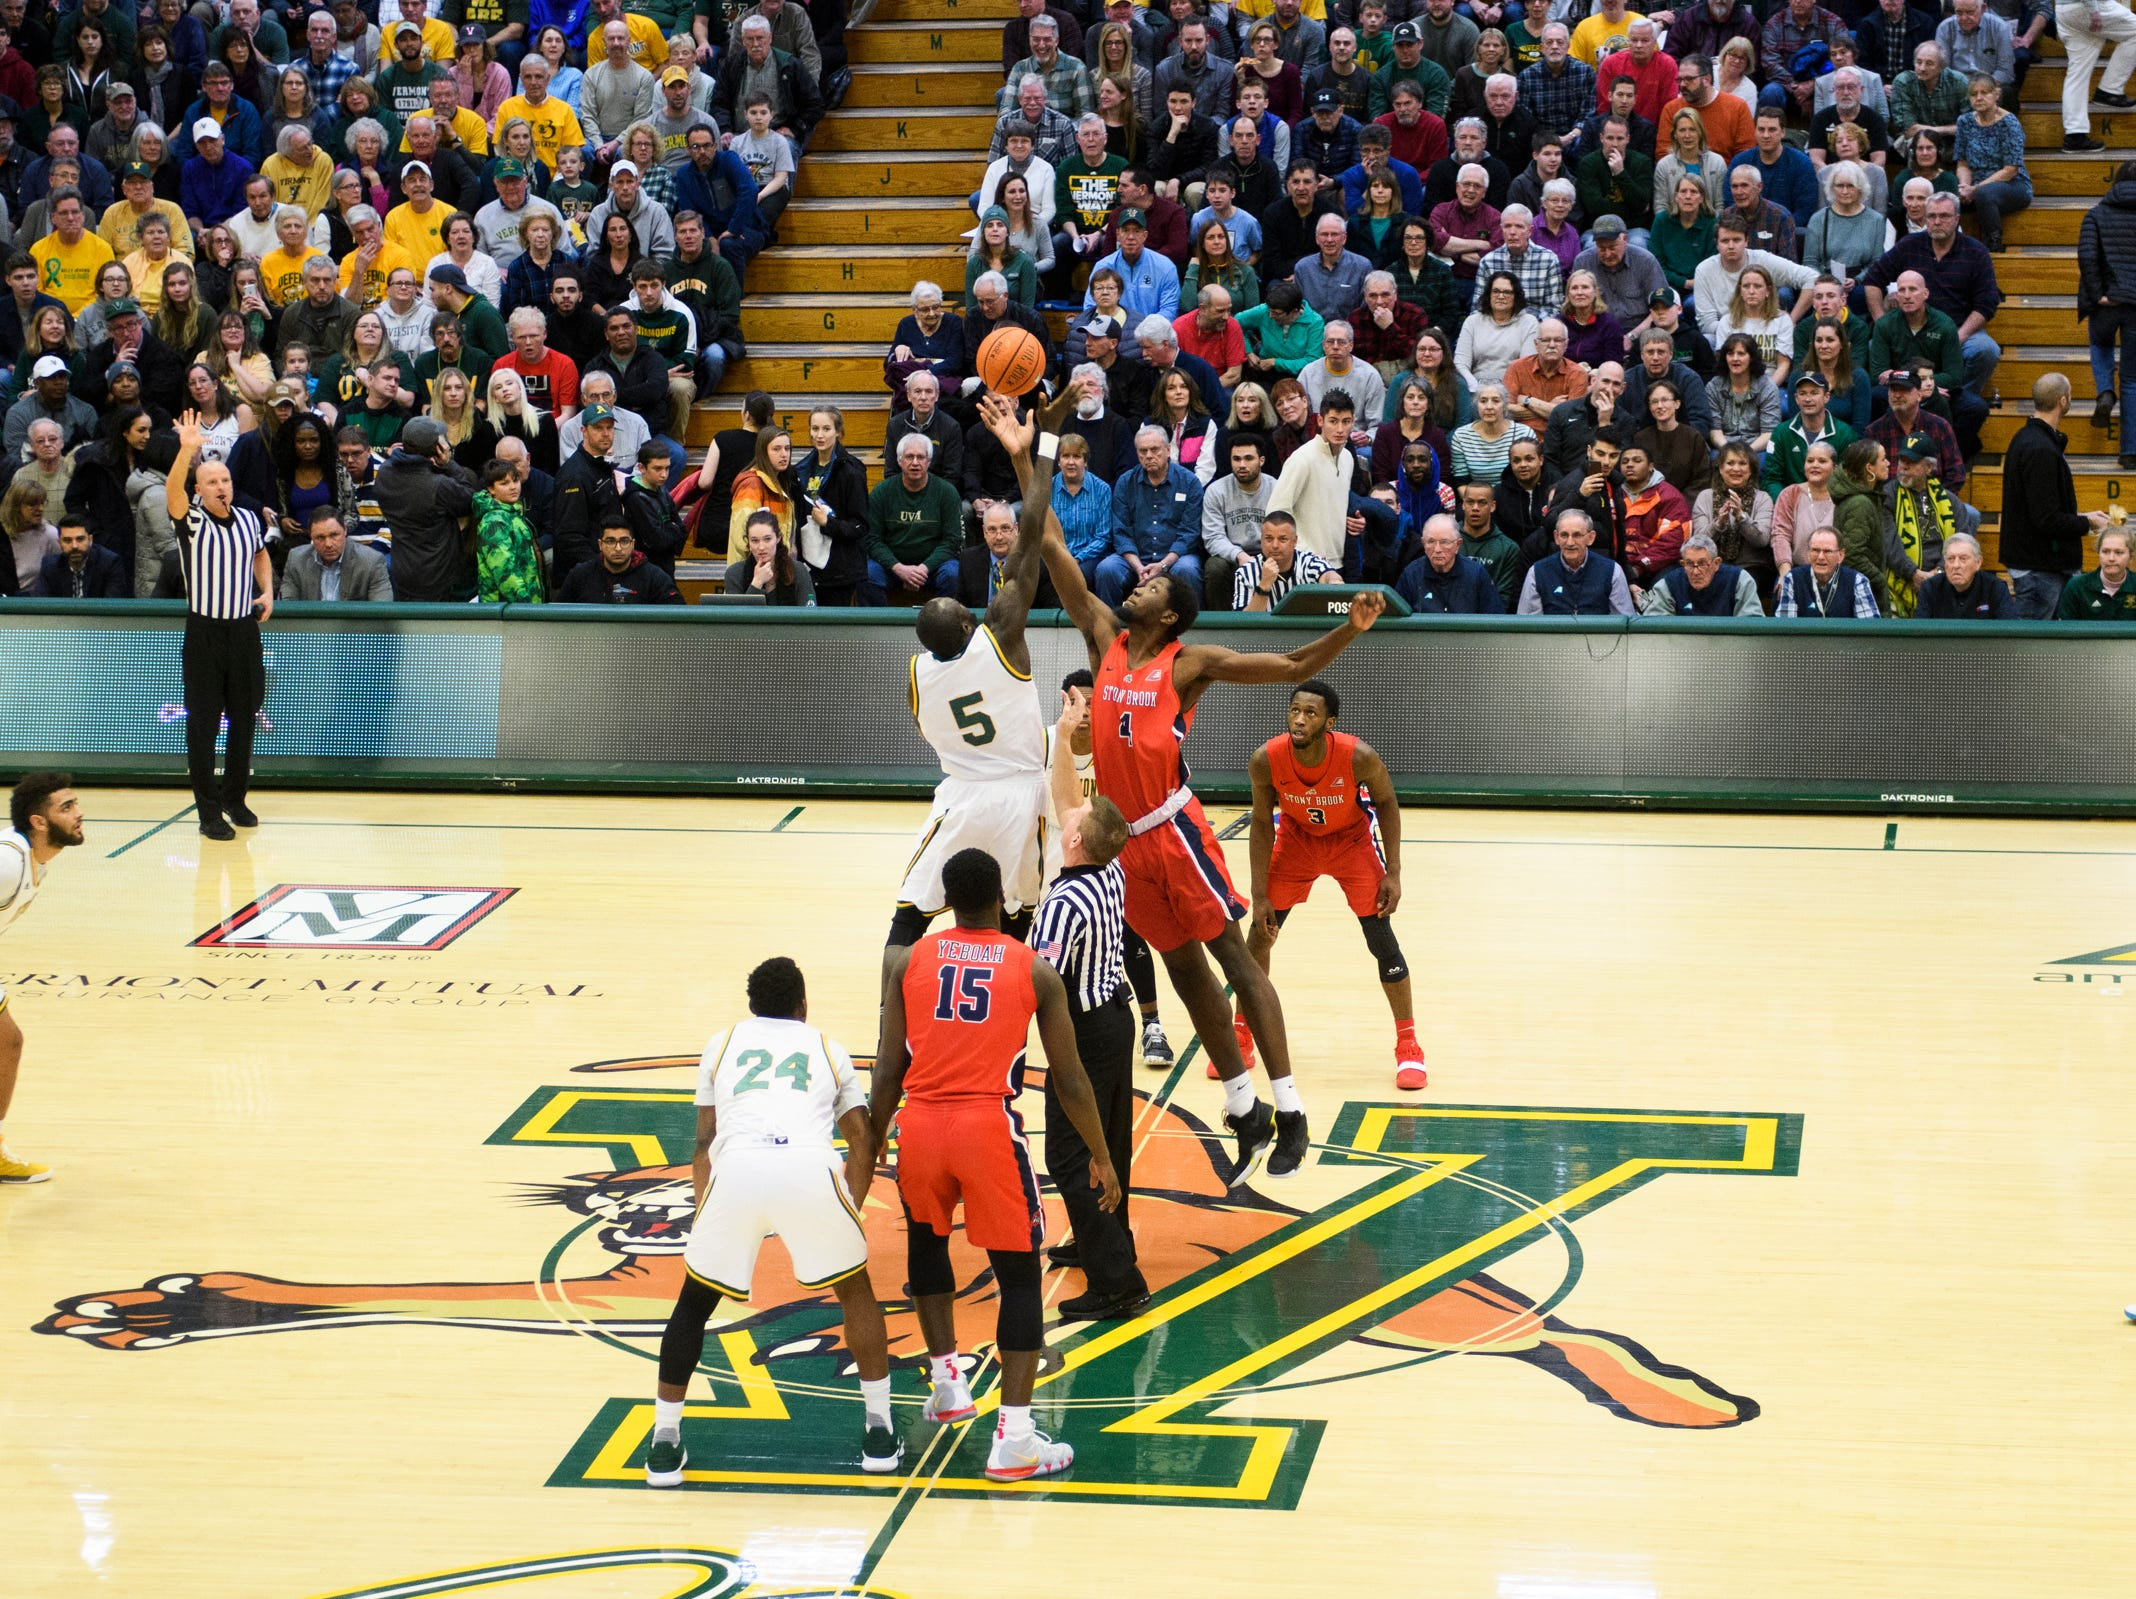 Vermont and Stony Brook battle for the opening tipoff during the men's basketball game between the Stony Brook Seawolves and the Vermont Catamounts at Patrick Gym on Saturday night March 2, 2019 in Burlington, Vermont.